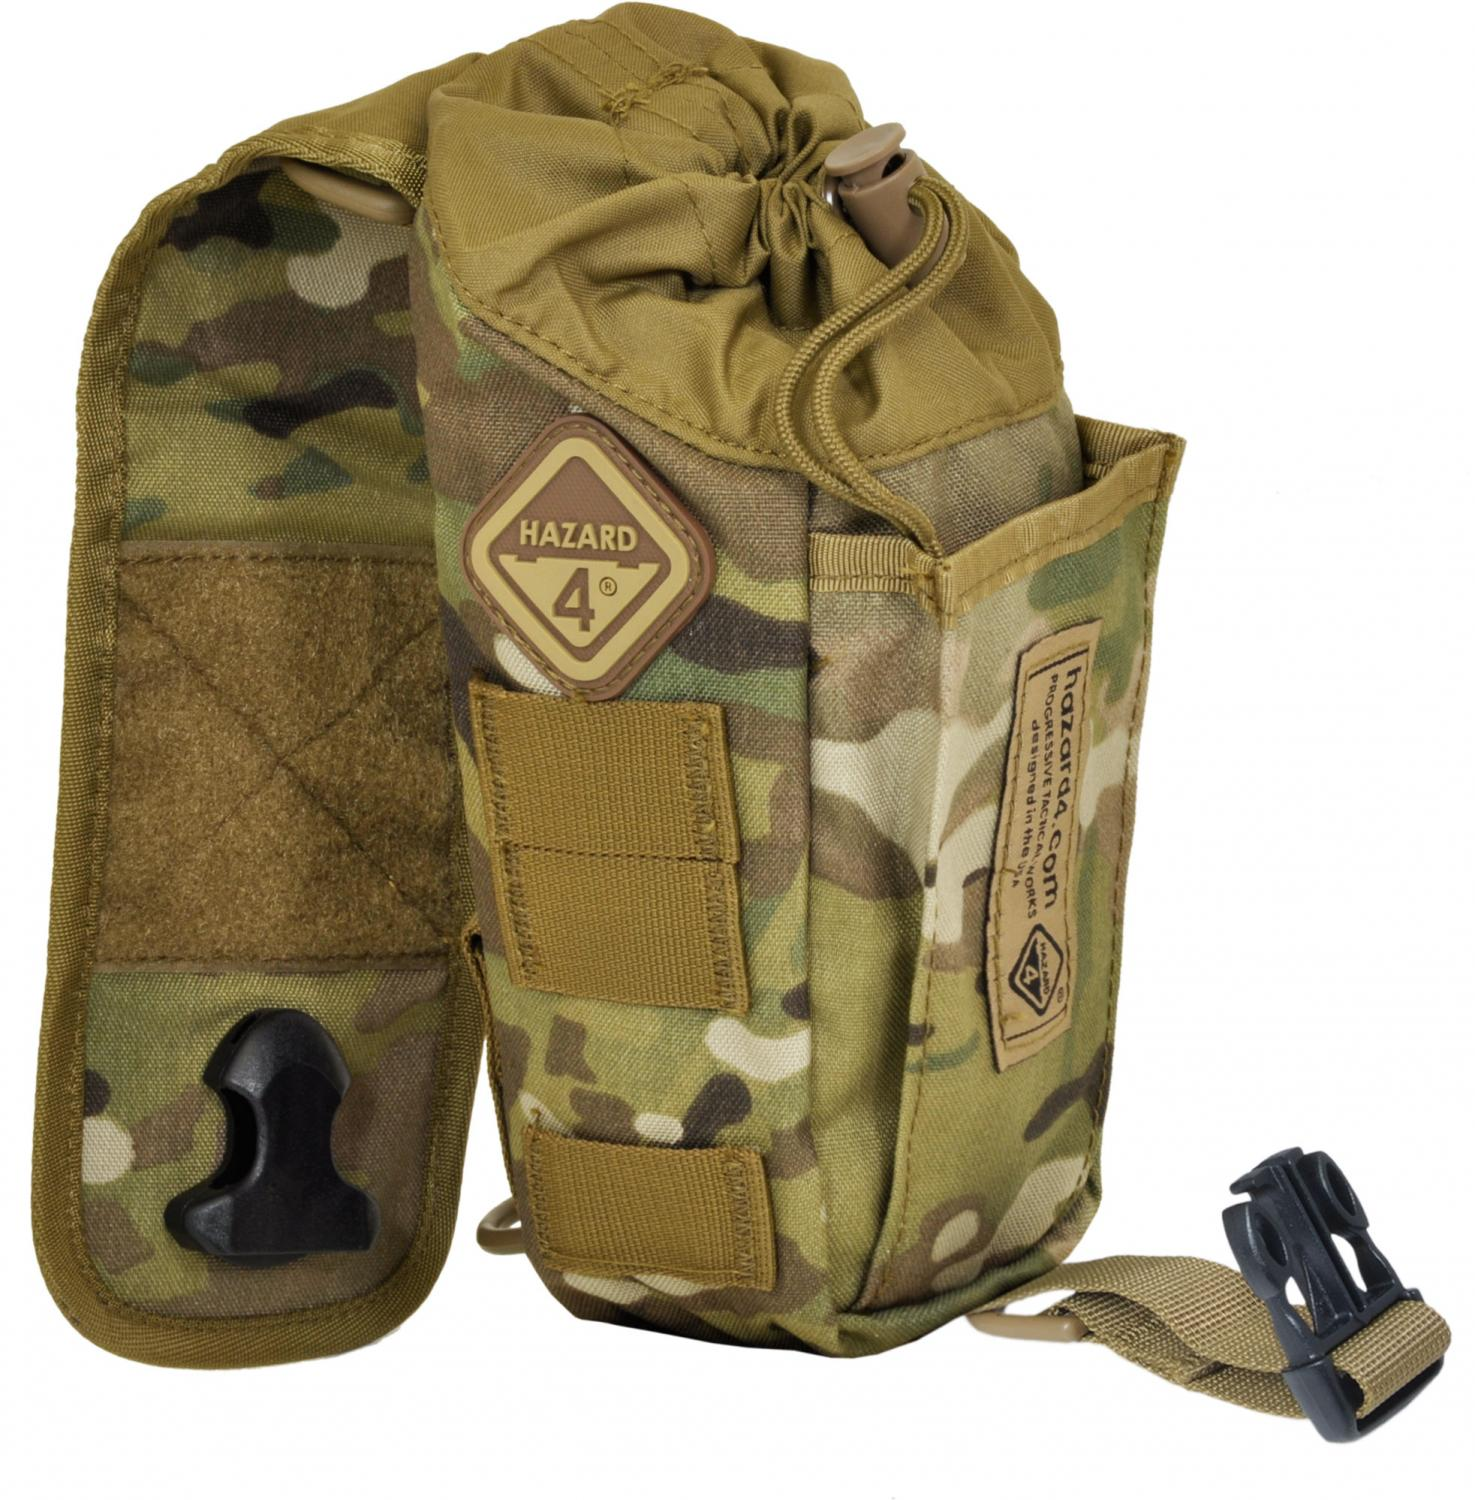 Hazard 4 Flip-Pouch Bottle/Magazine Pouch, MultiCam